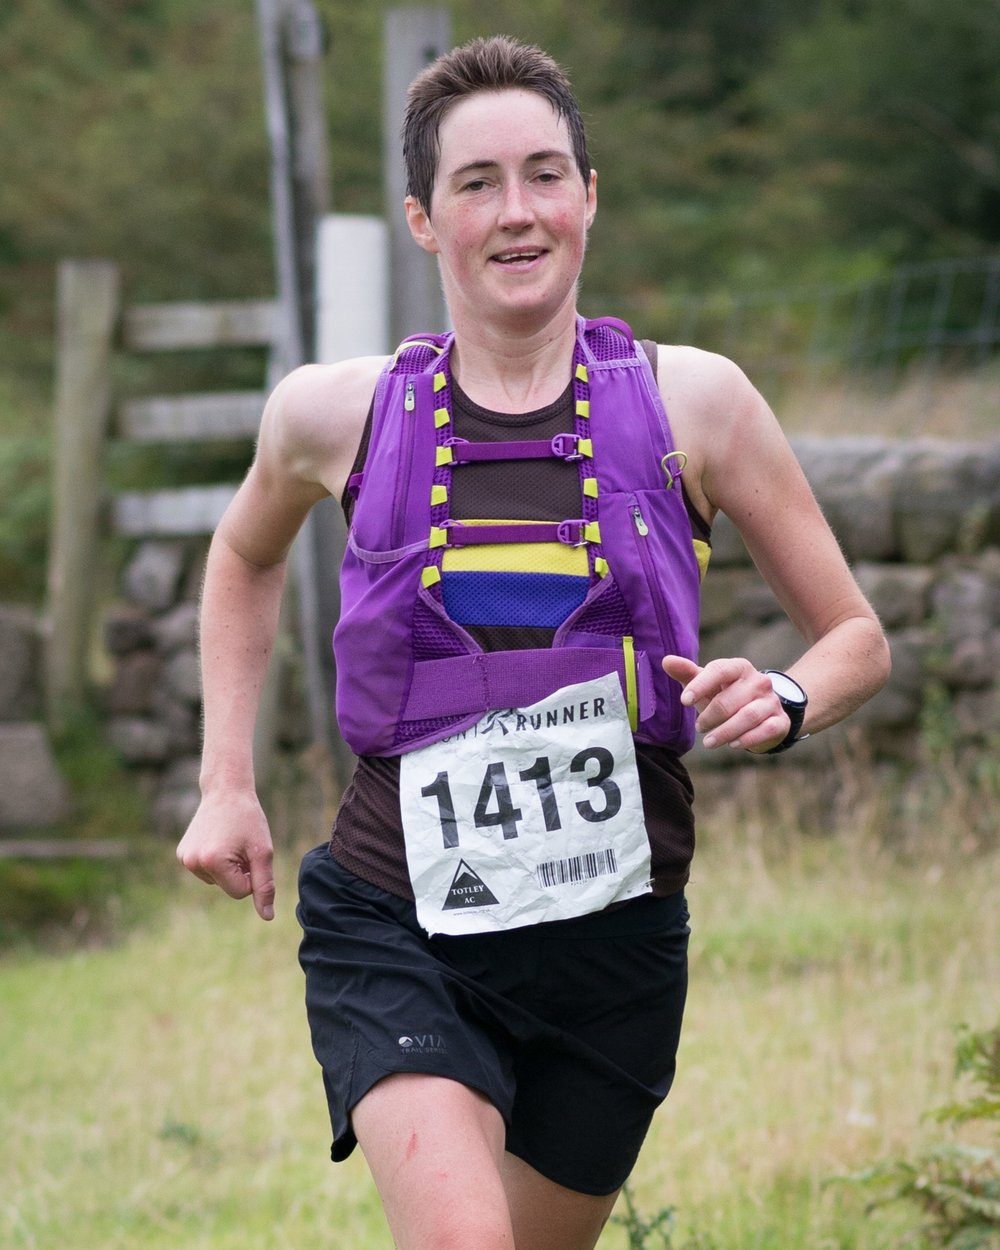 Sally Fawcett - Sally qualified as a physiotherapist from Sheffield Hallam University in 2008. Sally is also a qualified personal trainer and runs weekly circuit classes for runners.She is a keen fell and ultra runner. In 2015, 2016 and 2017 she competed for Britain in the Trail World Championships with a best of 27th.In 2017 she completed the Bob Graham Round in 19 hours 37 minutes, the 7th fastest time ever by a woman. She also won the Edale Skyline and was the second fastest woman in the Sheffield Half Marathon, finishing in 84 minutes 47 seconds.